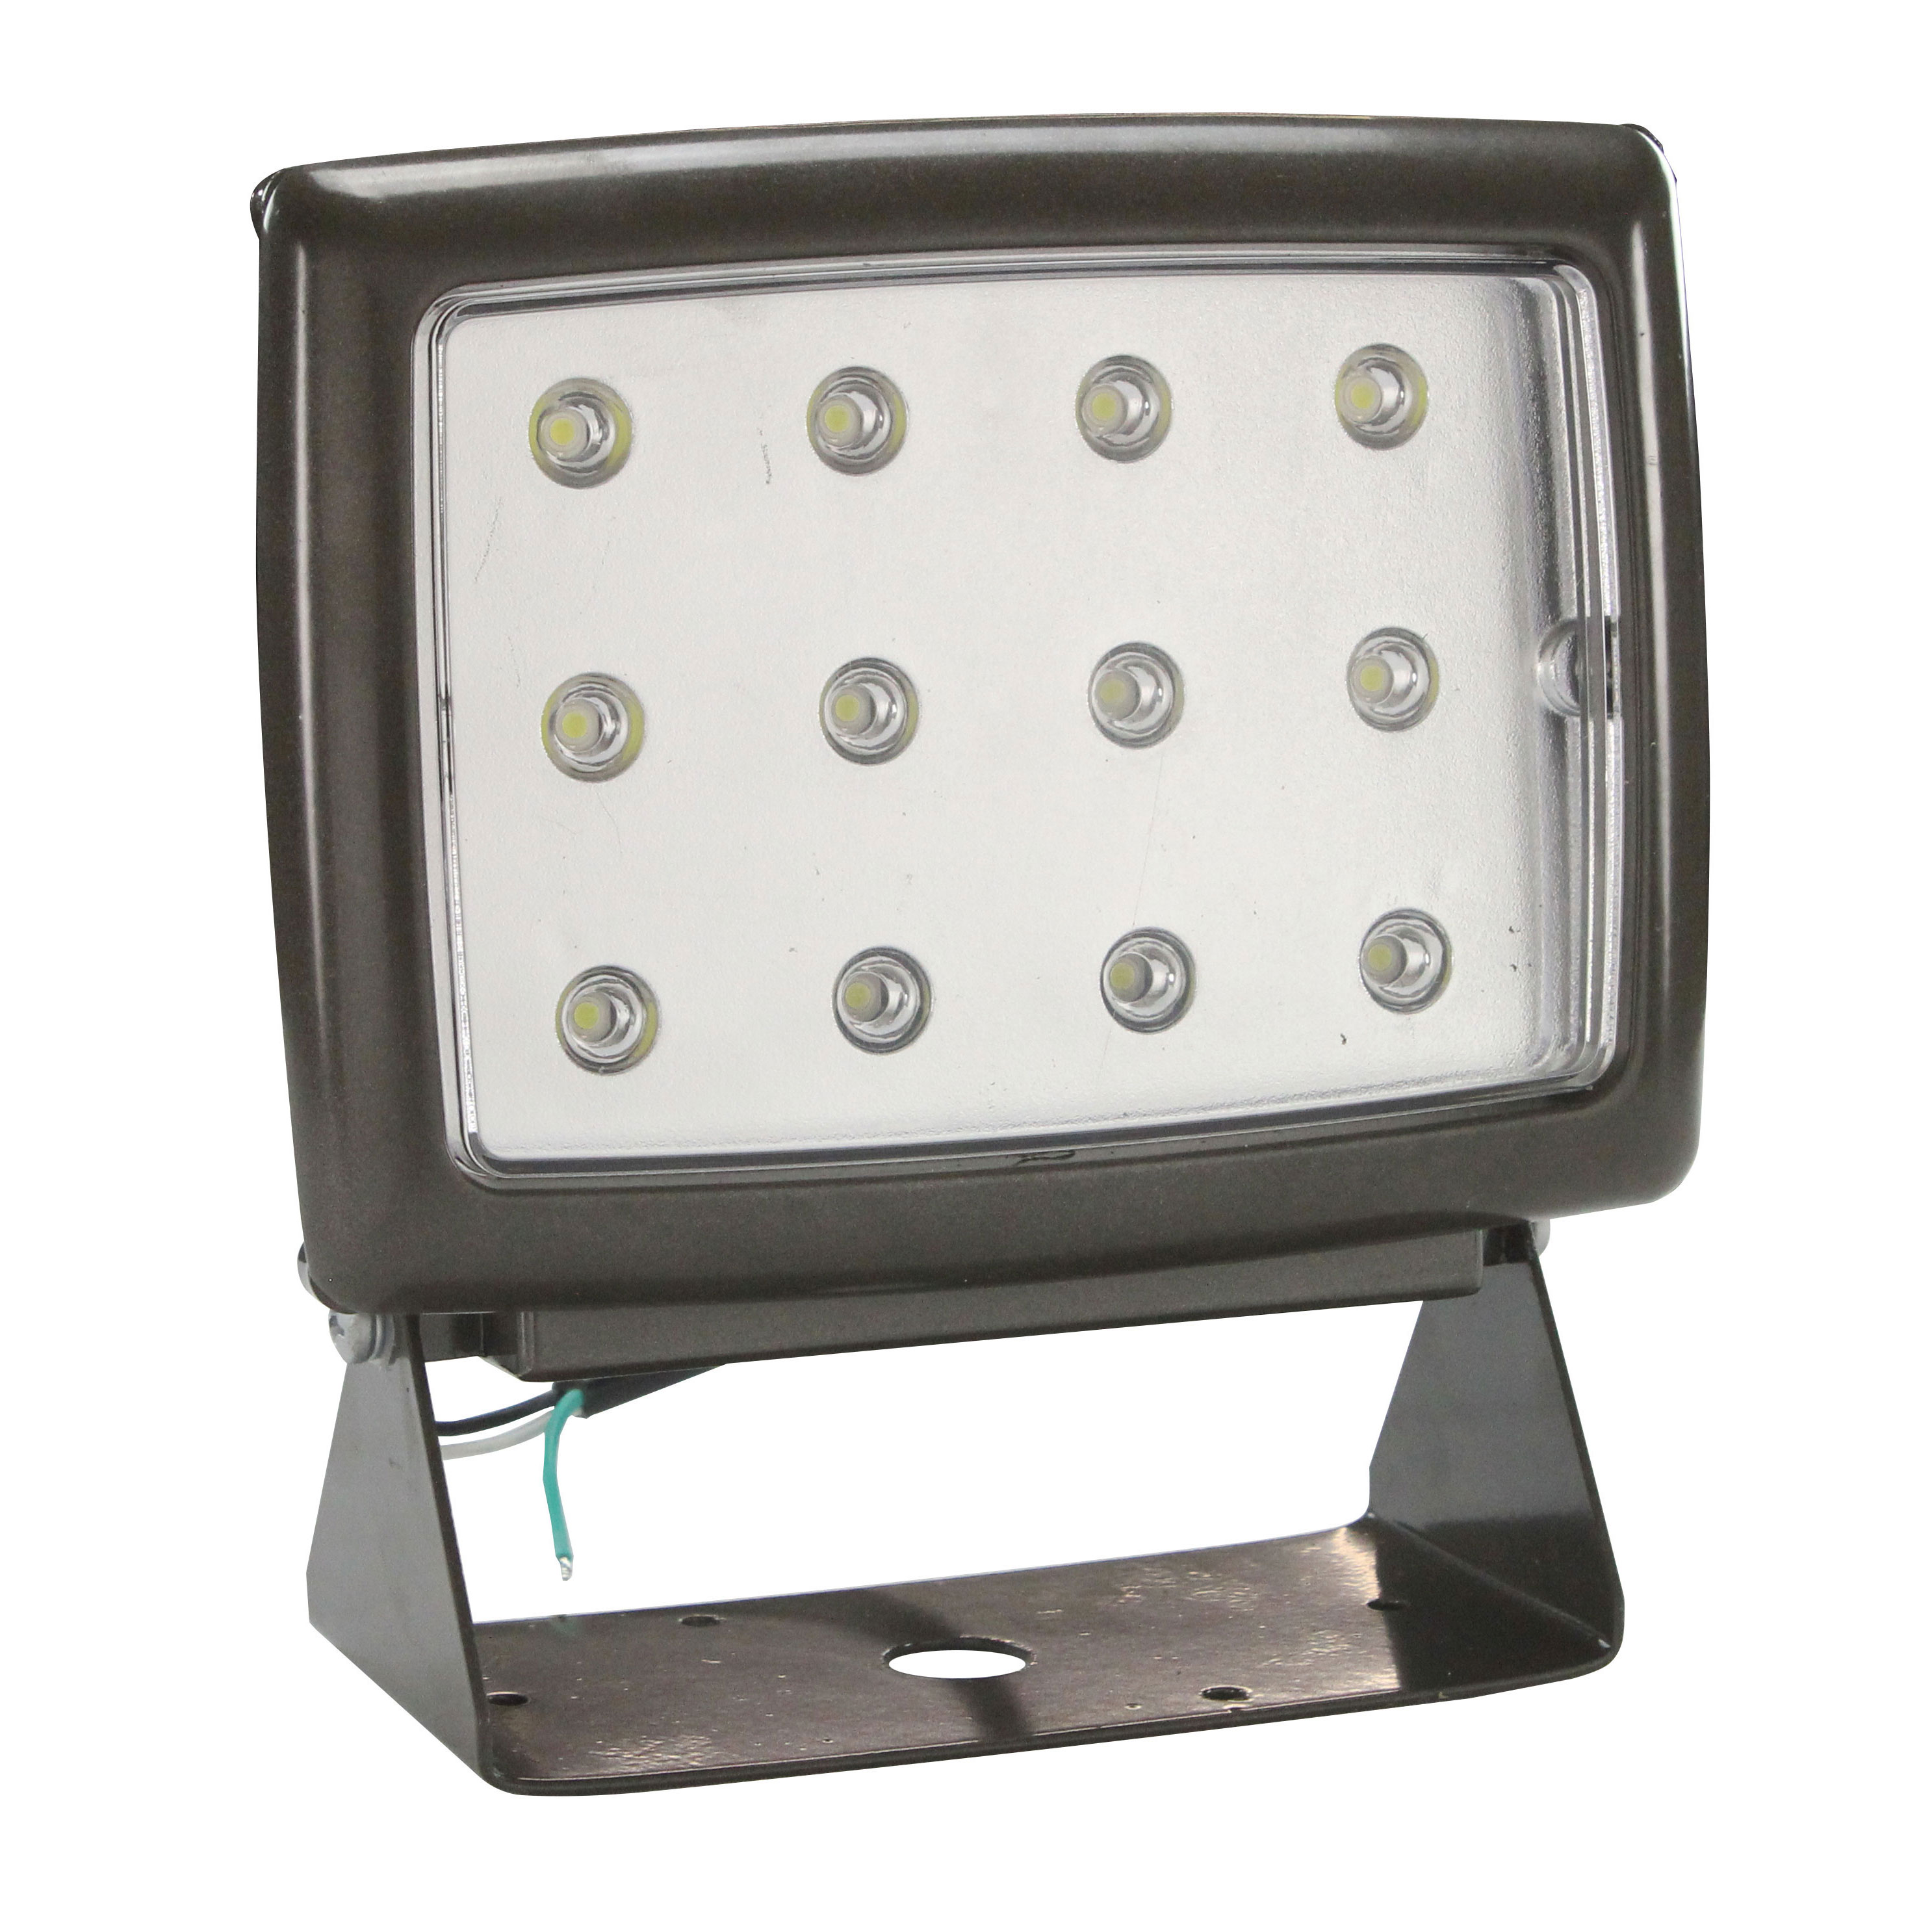 Larson electronics releases 40 watt led wall pack light with 30 cord and general use plug - Consider led wall pack lighting home ...